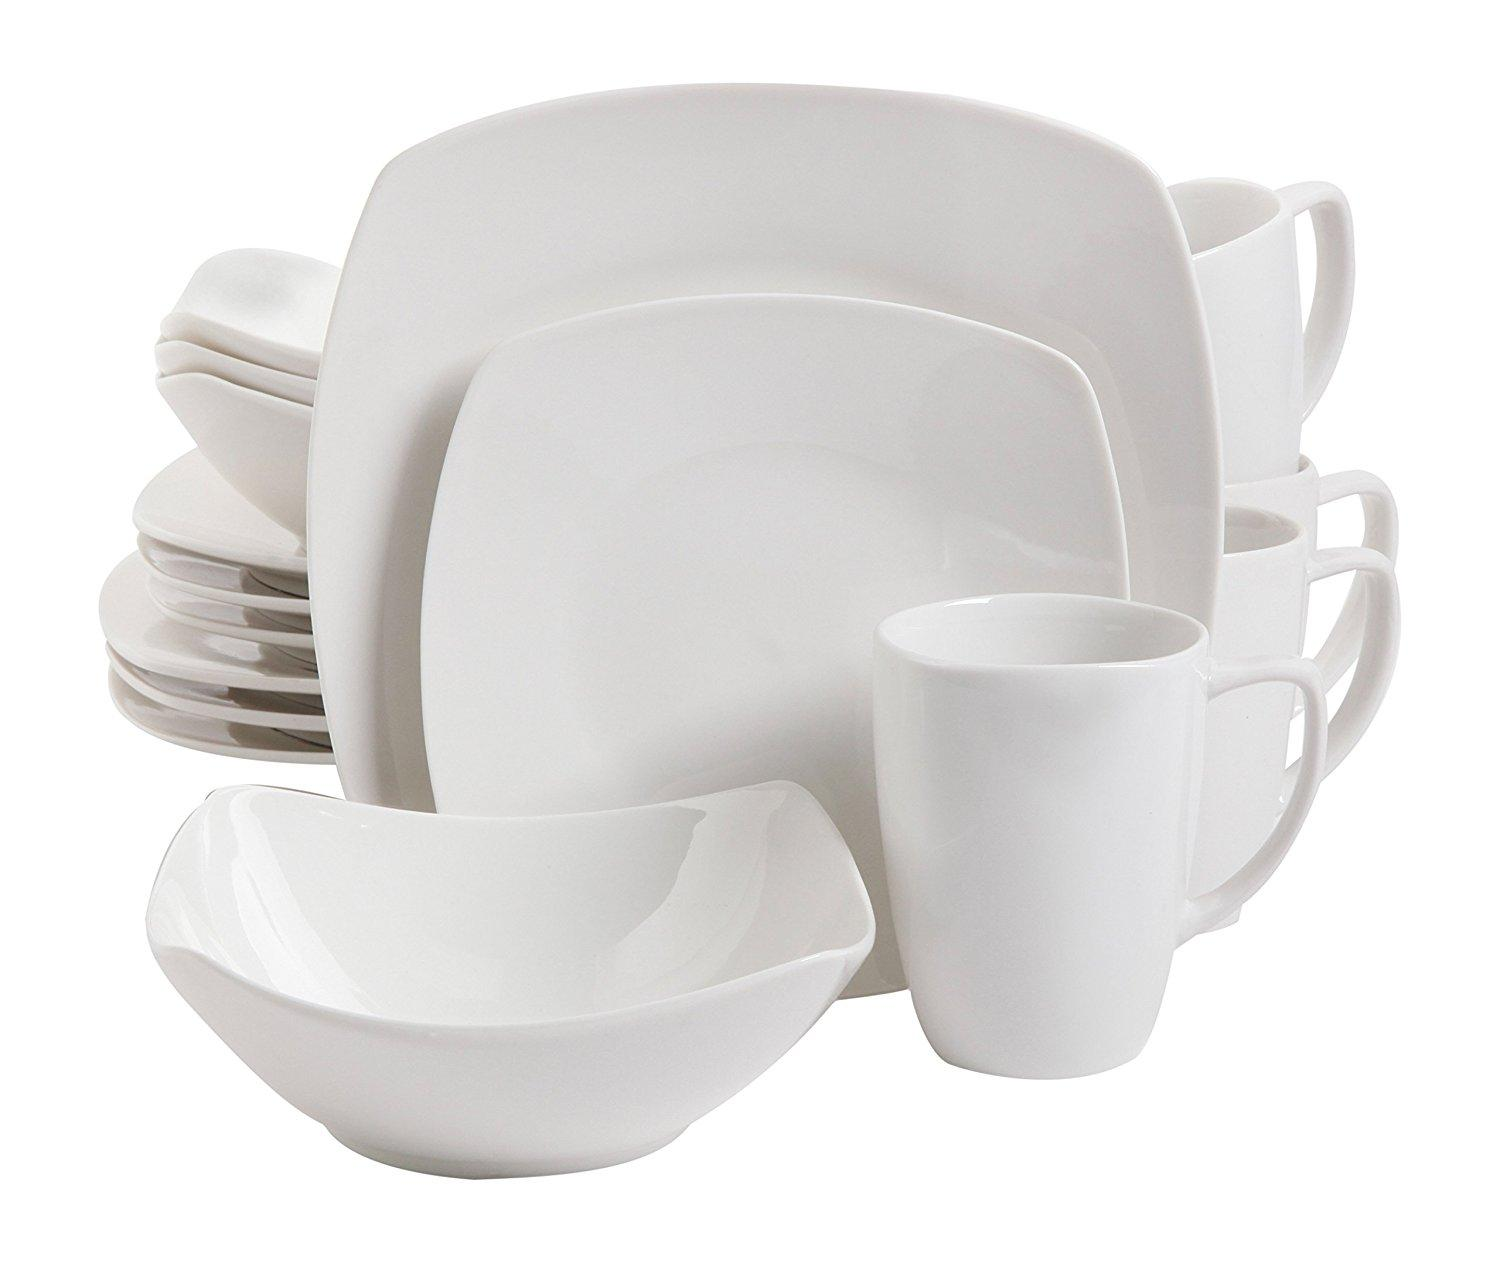 Gibson Home Zen Buffetware 16 pc Porcelain Dinnerware Set  sc 1 st  Amazon.com : black square plate set - pezcame.com